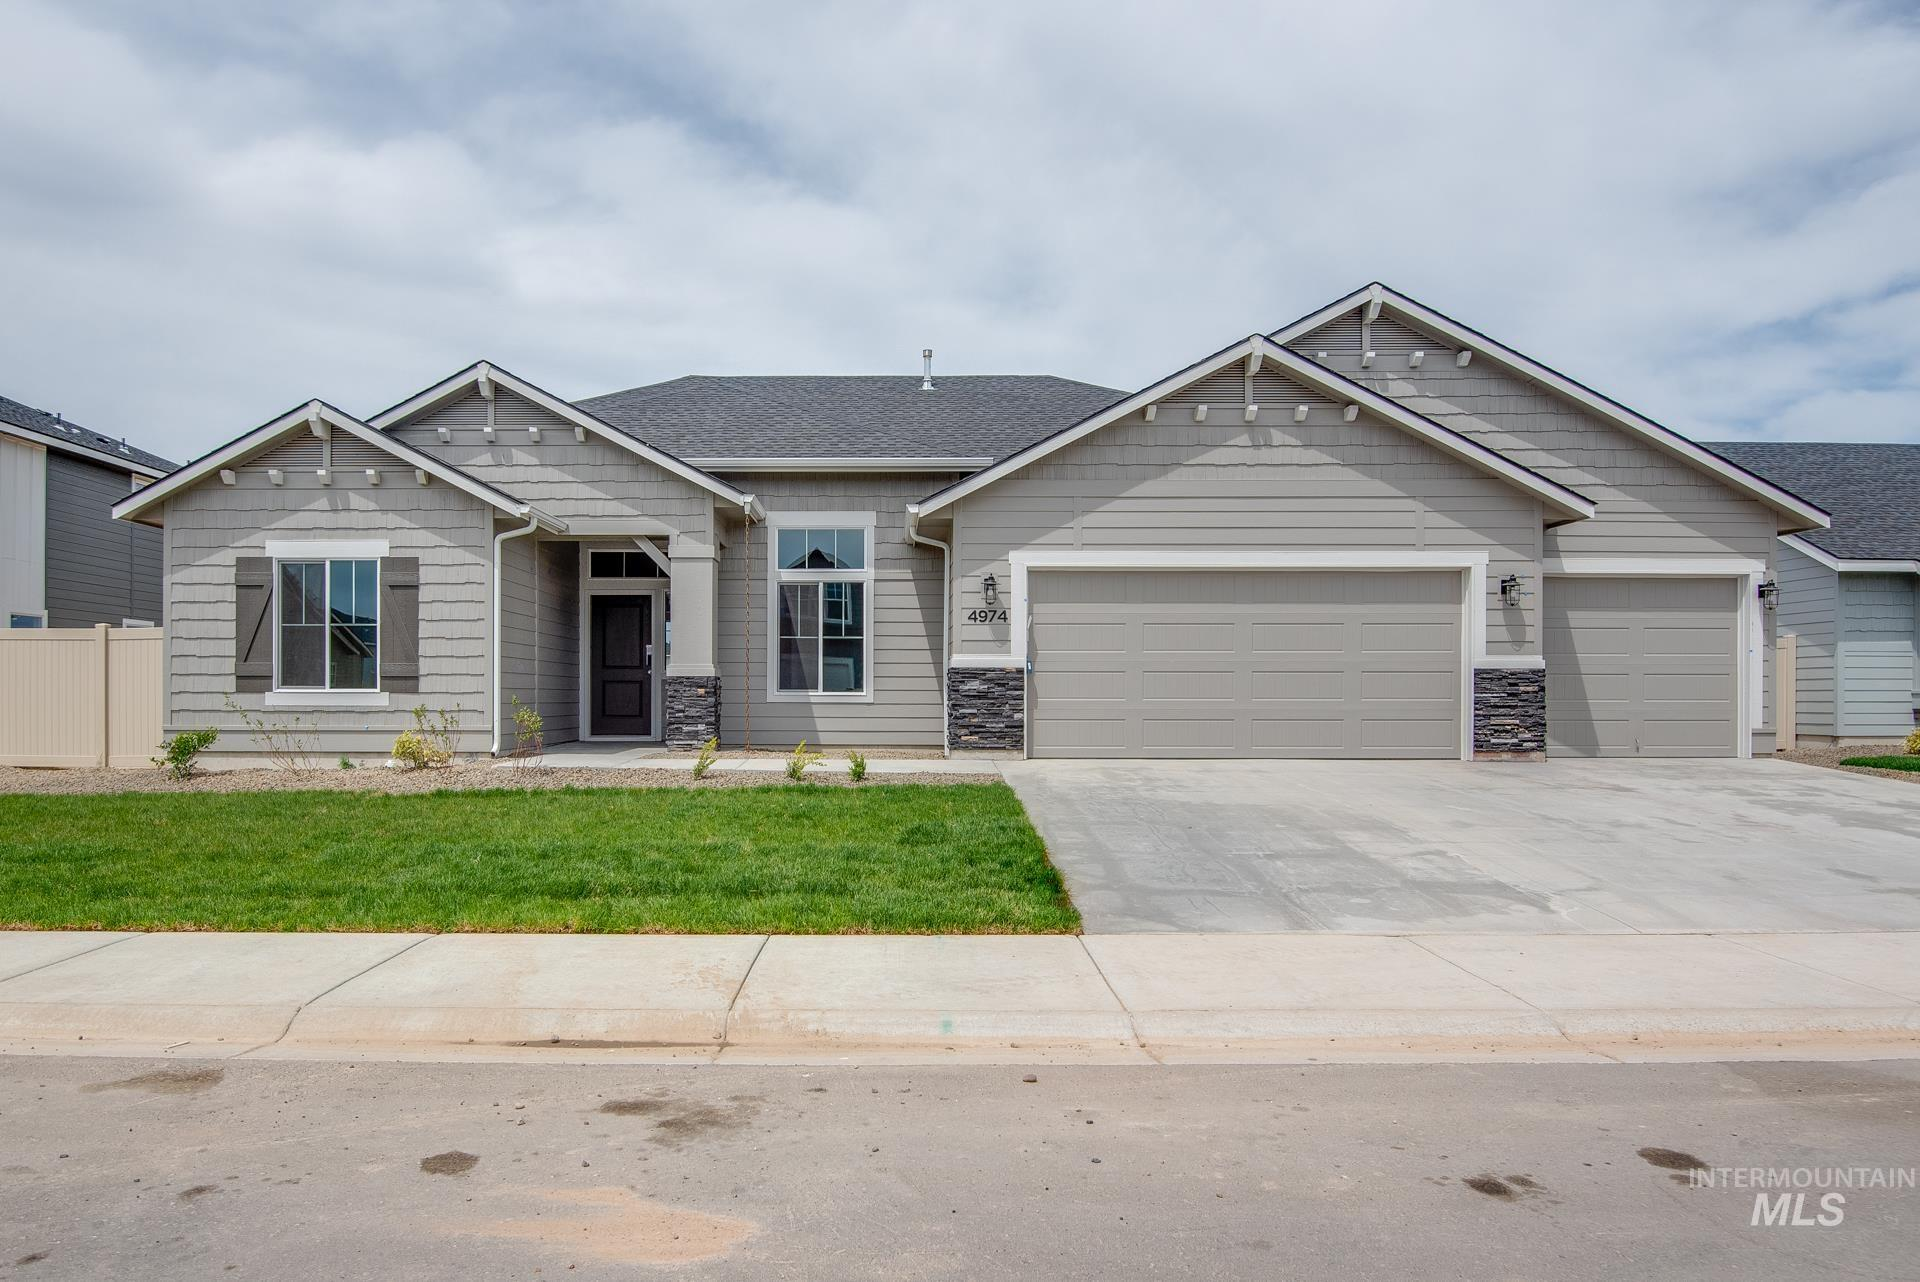 4974 W Sands Basin Dr Property Photo - Meridian, ID real estate listing